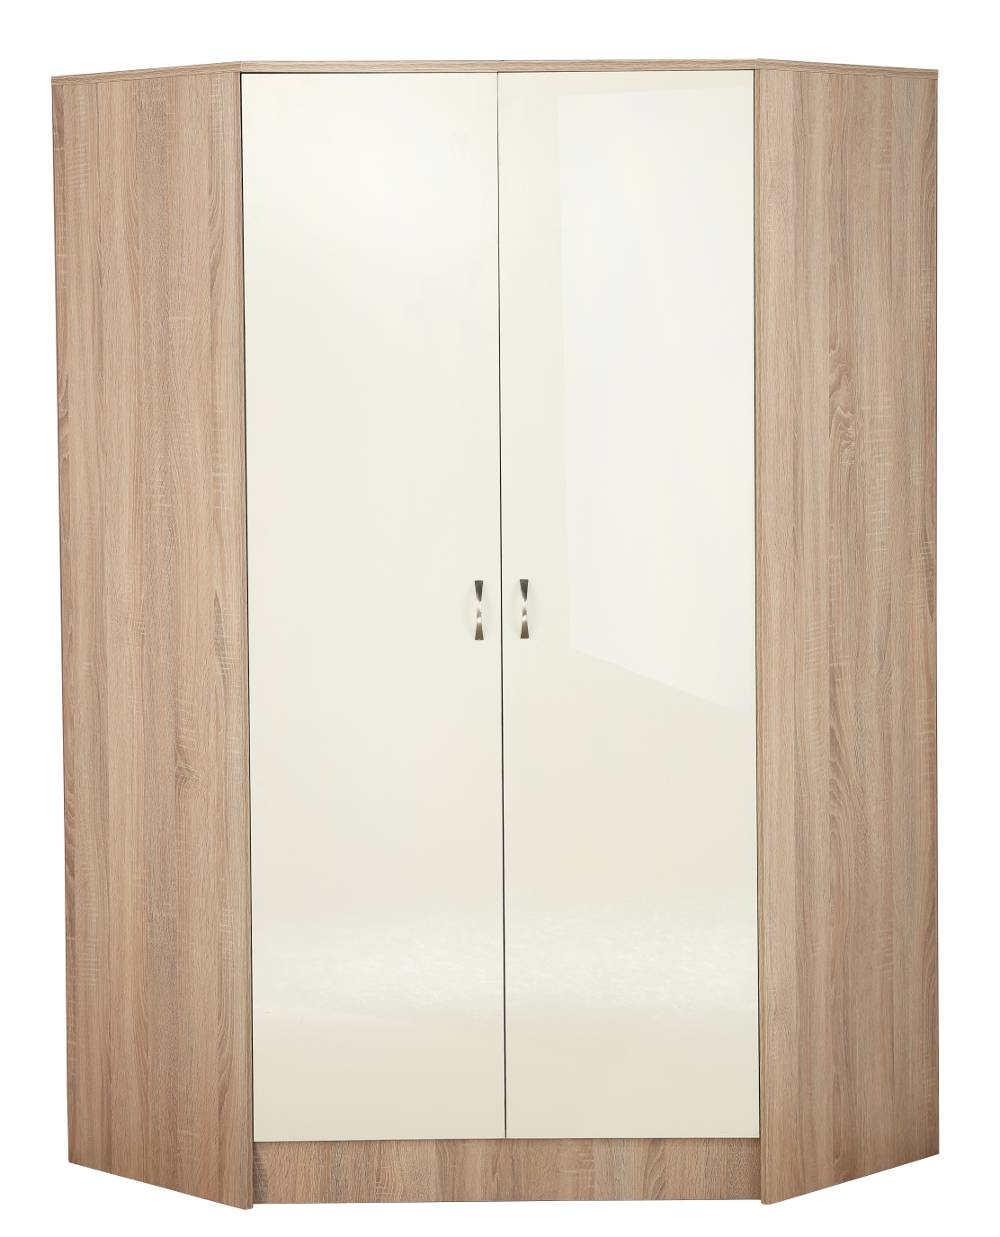 Kanya 2 Door Corner Wardrobe – Sen Furniture For 2 Door Corner Wardrobes (View 4 of 15)